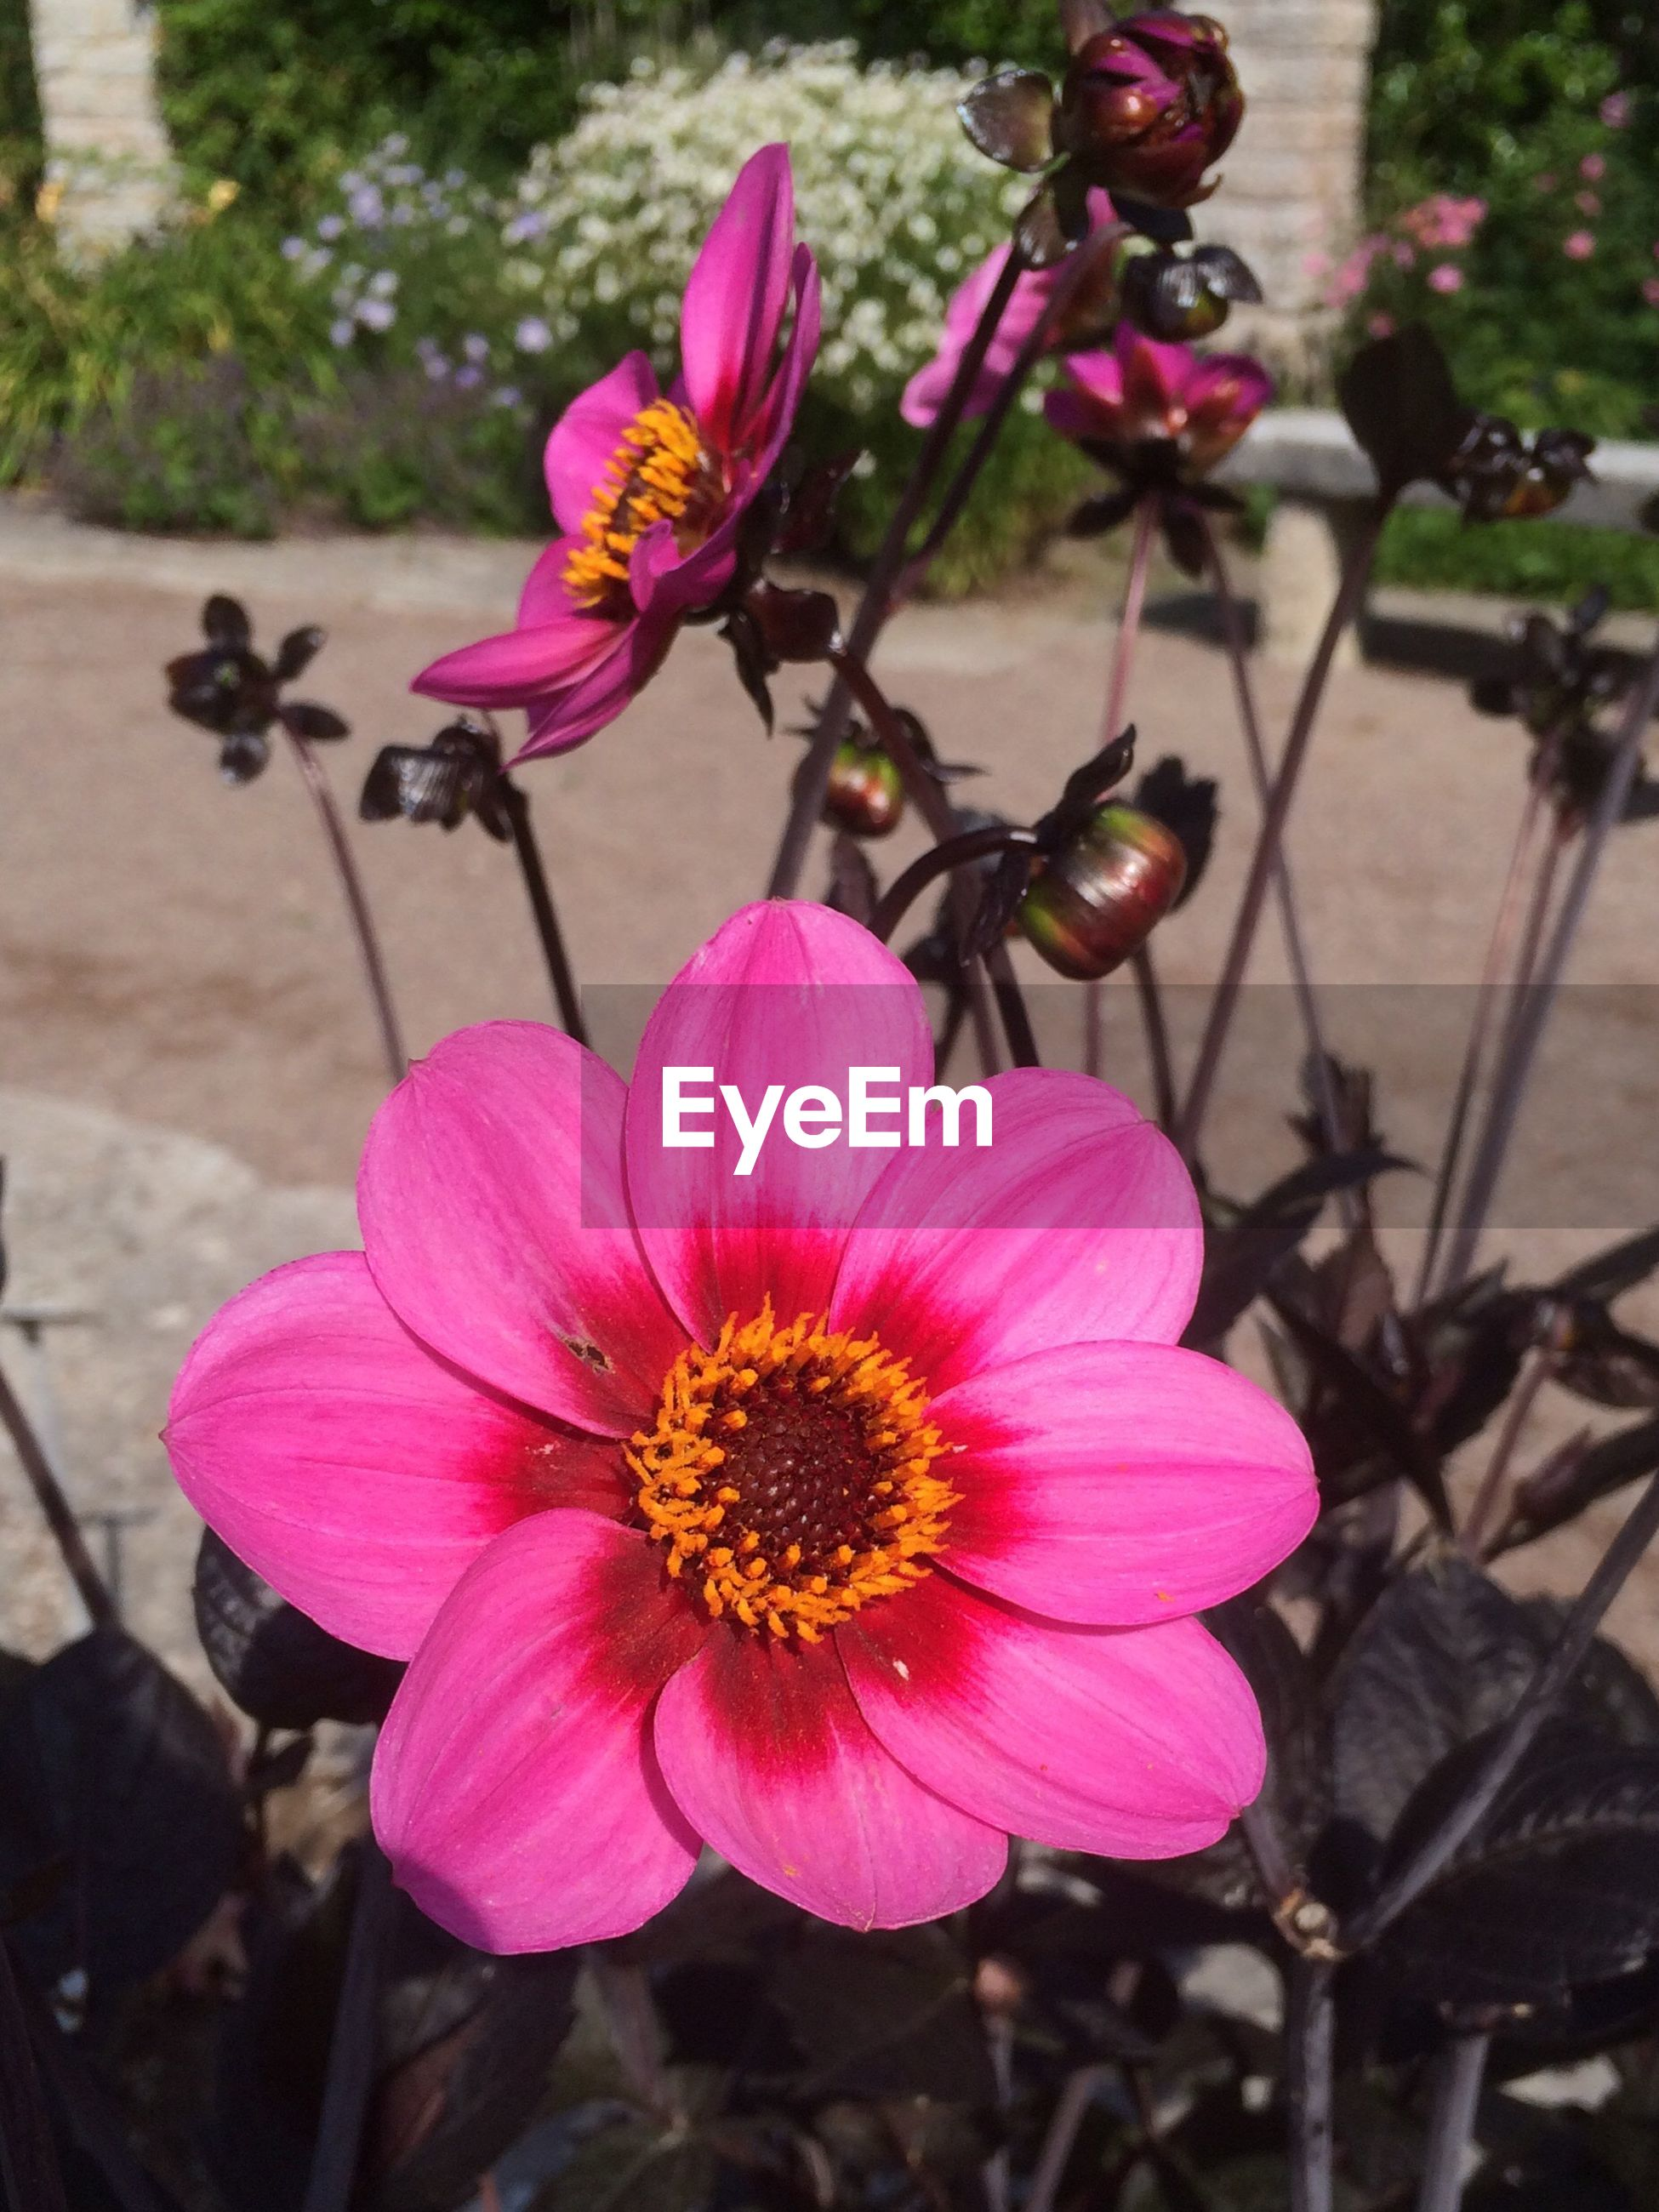 flower, petal, freshness, fragility, flower head, pink color, focus on foreground, beauty in nature, close-up, blooming, growth, pollen, nature, plant, in bloom, stamen, blossom, day, outdoors, no people, botany, stem, selective focus, softness